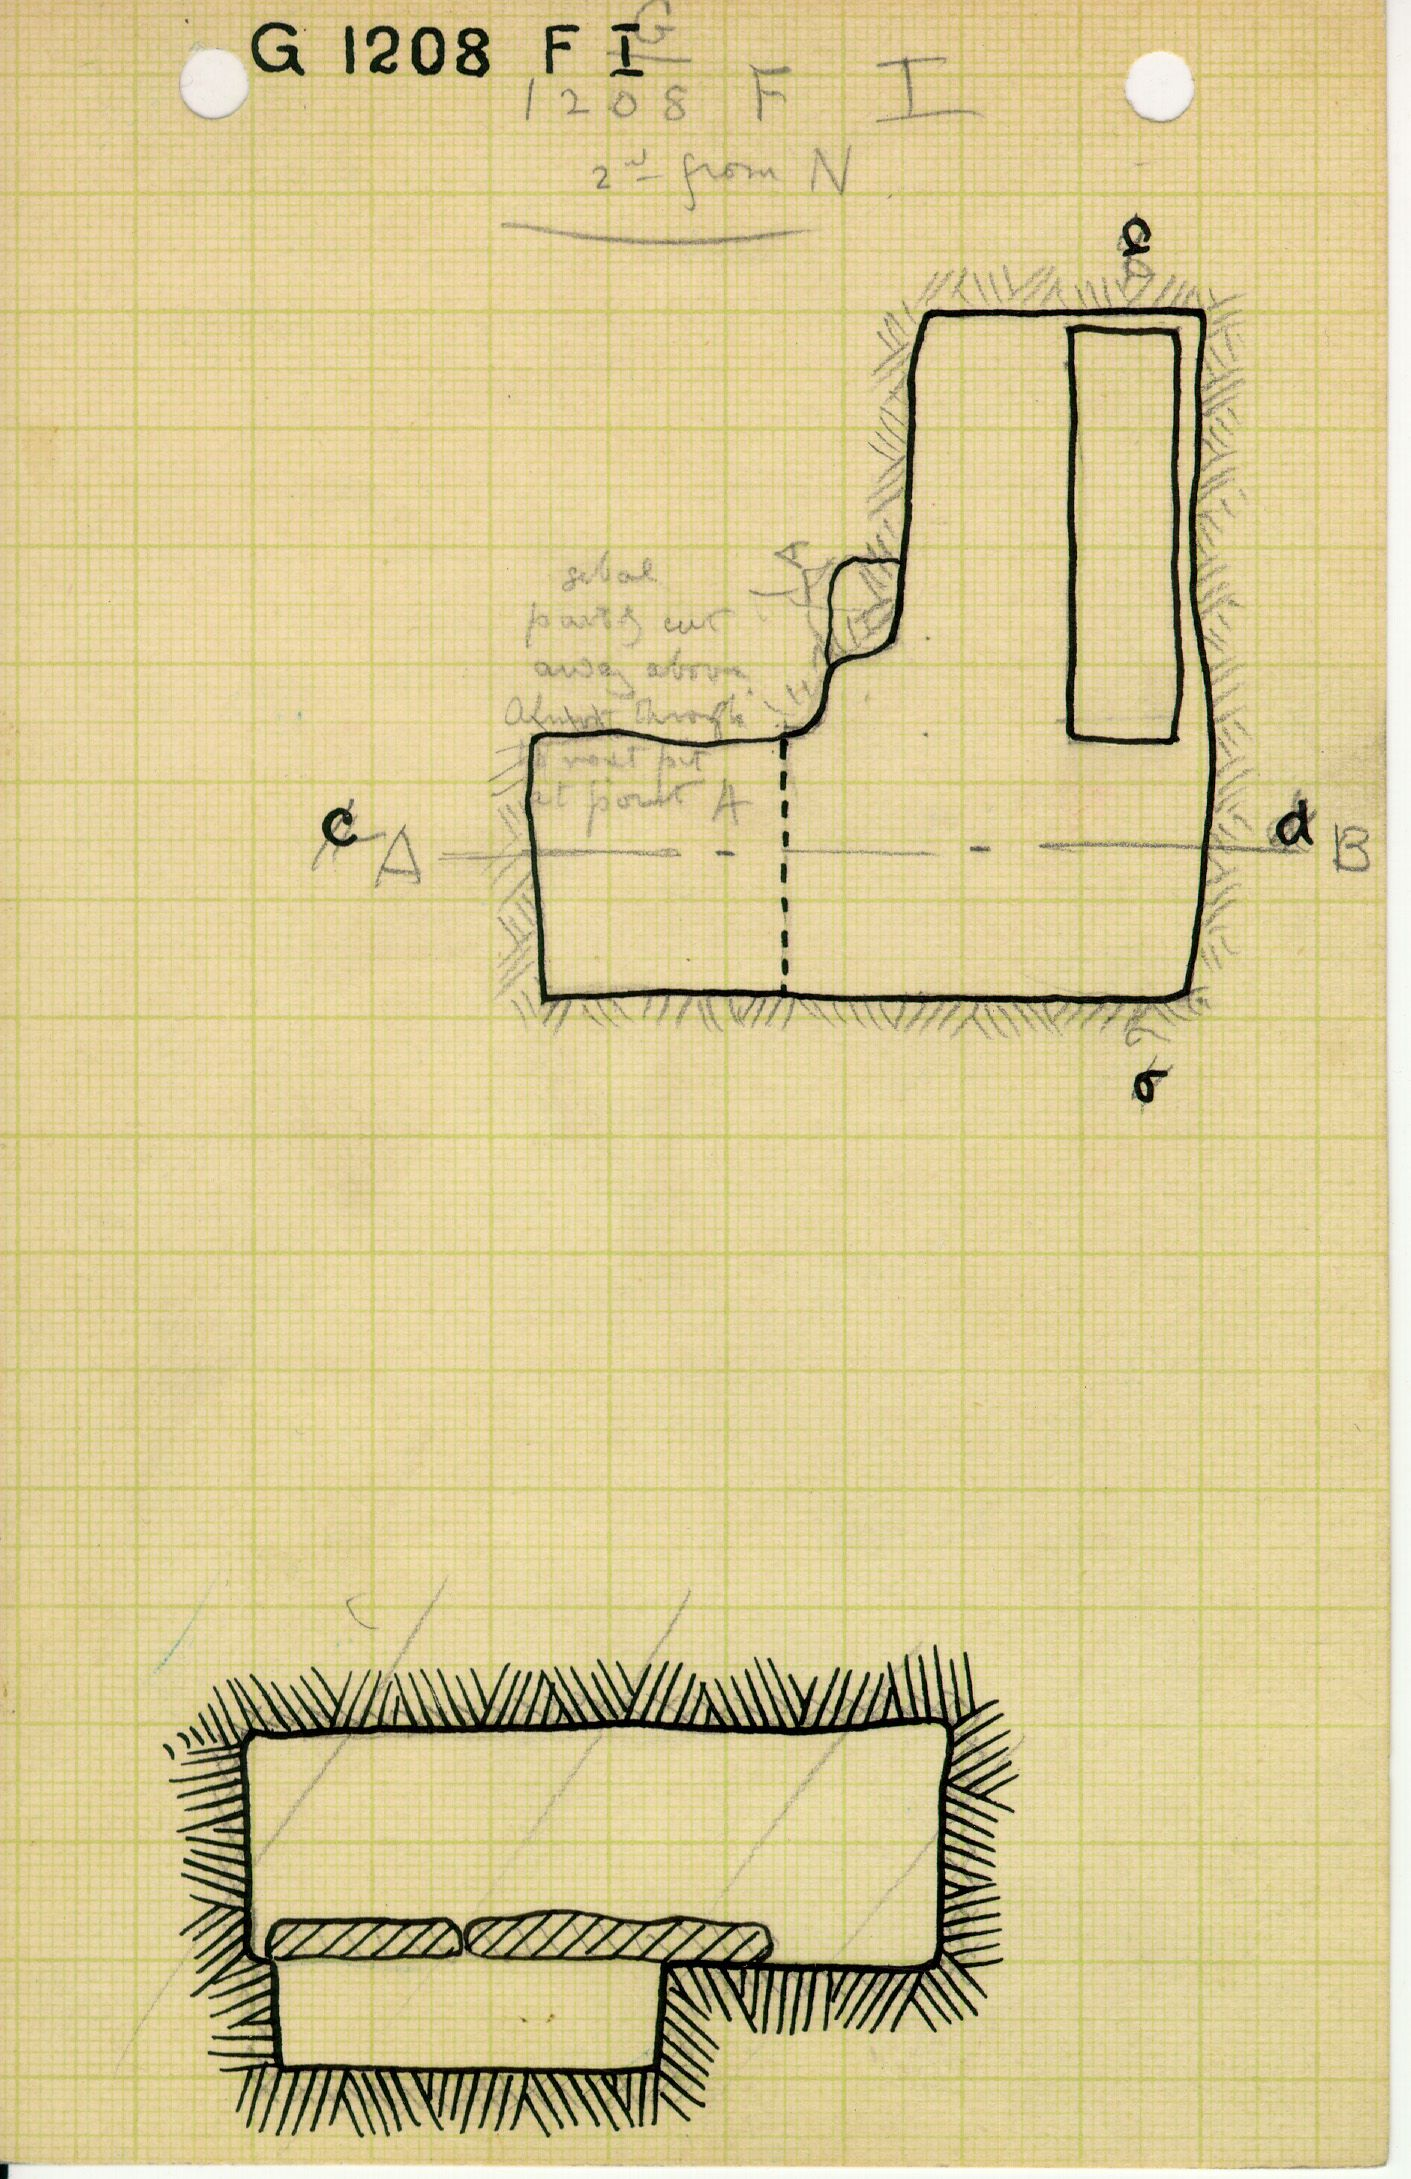 Maps and plans: G 1208, Shaft F (I)